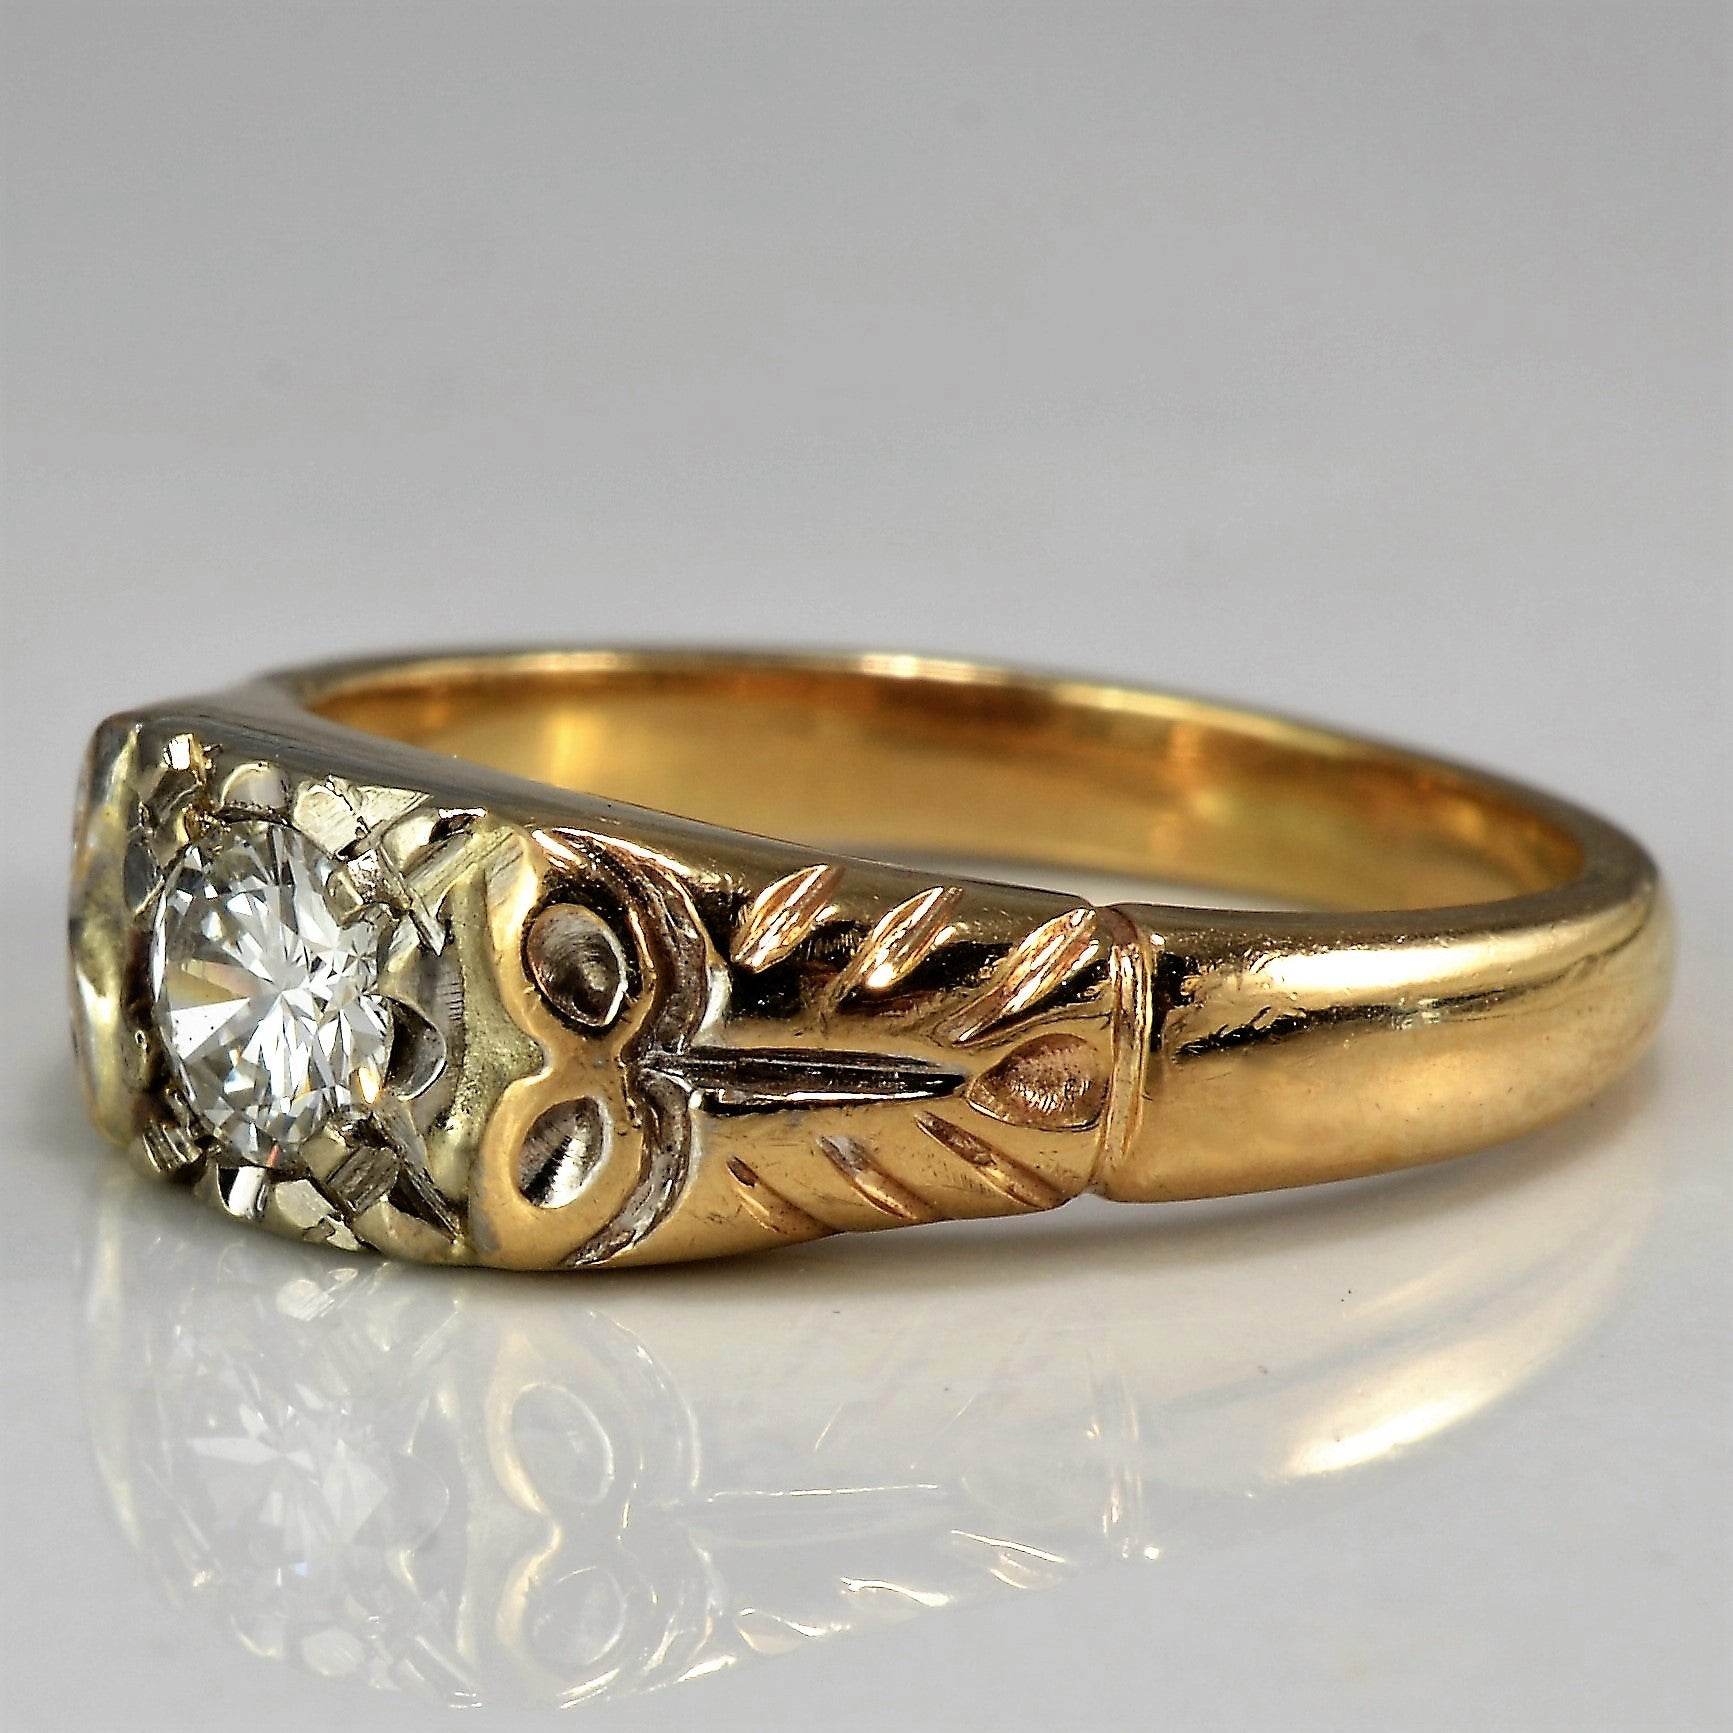 Vintage Floral Detailed Engagement Ring | 0.25 ct, SZ 5.75 |